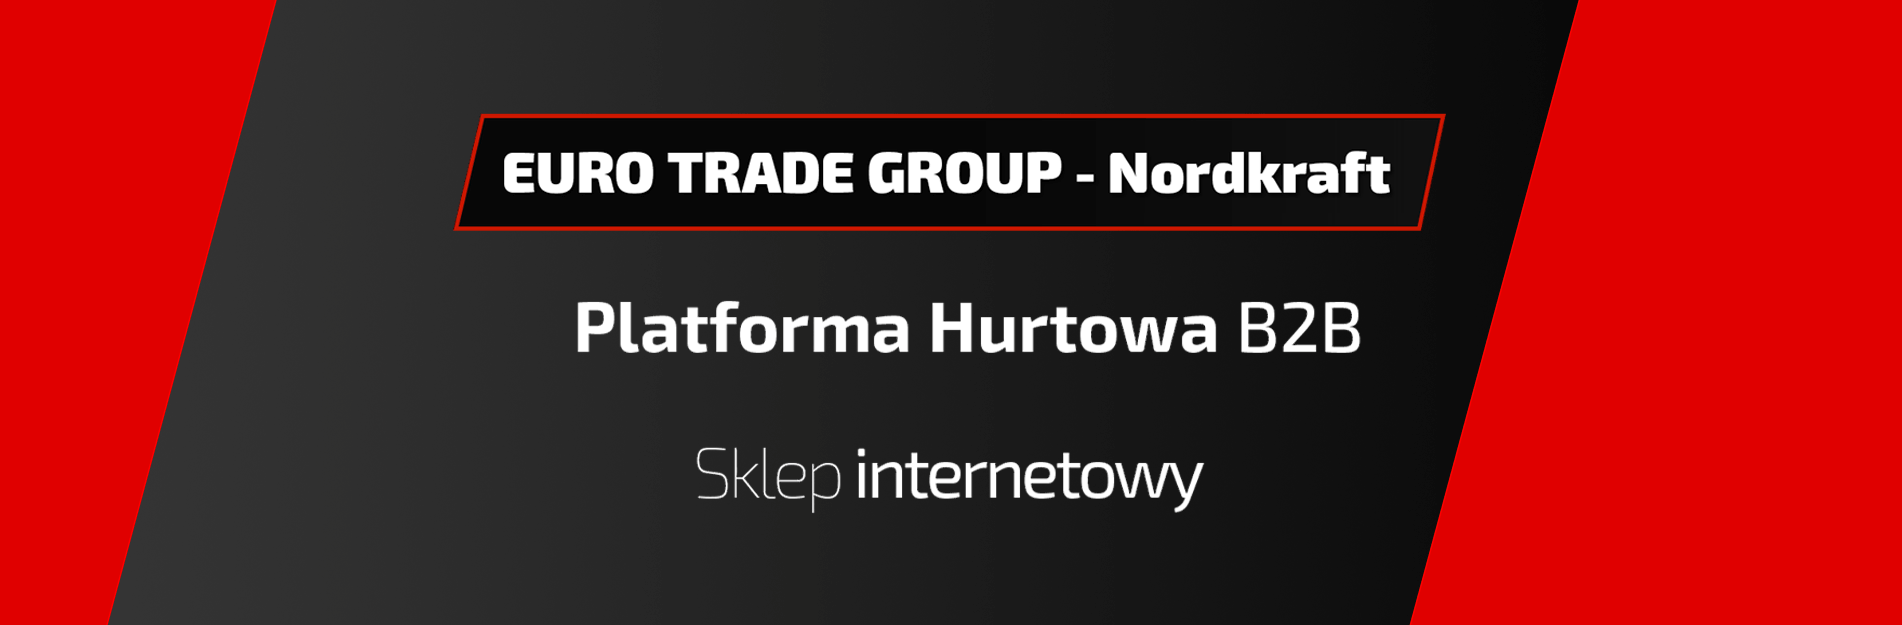 nordkraft-euro-trade-group-platforma-b2b